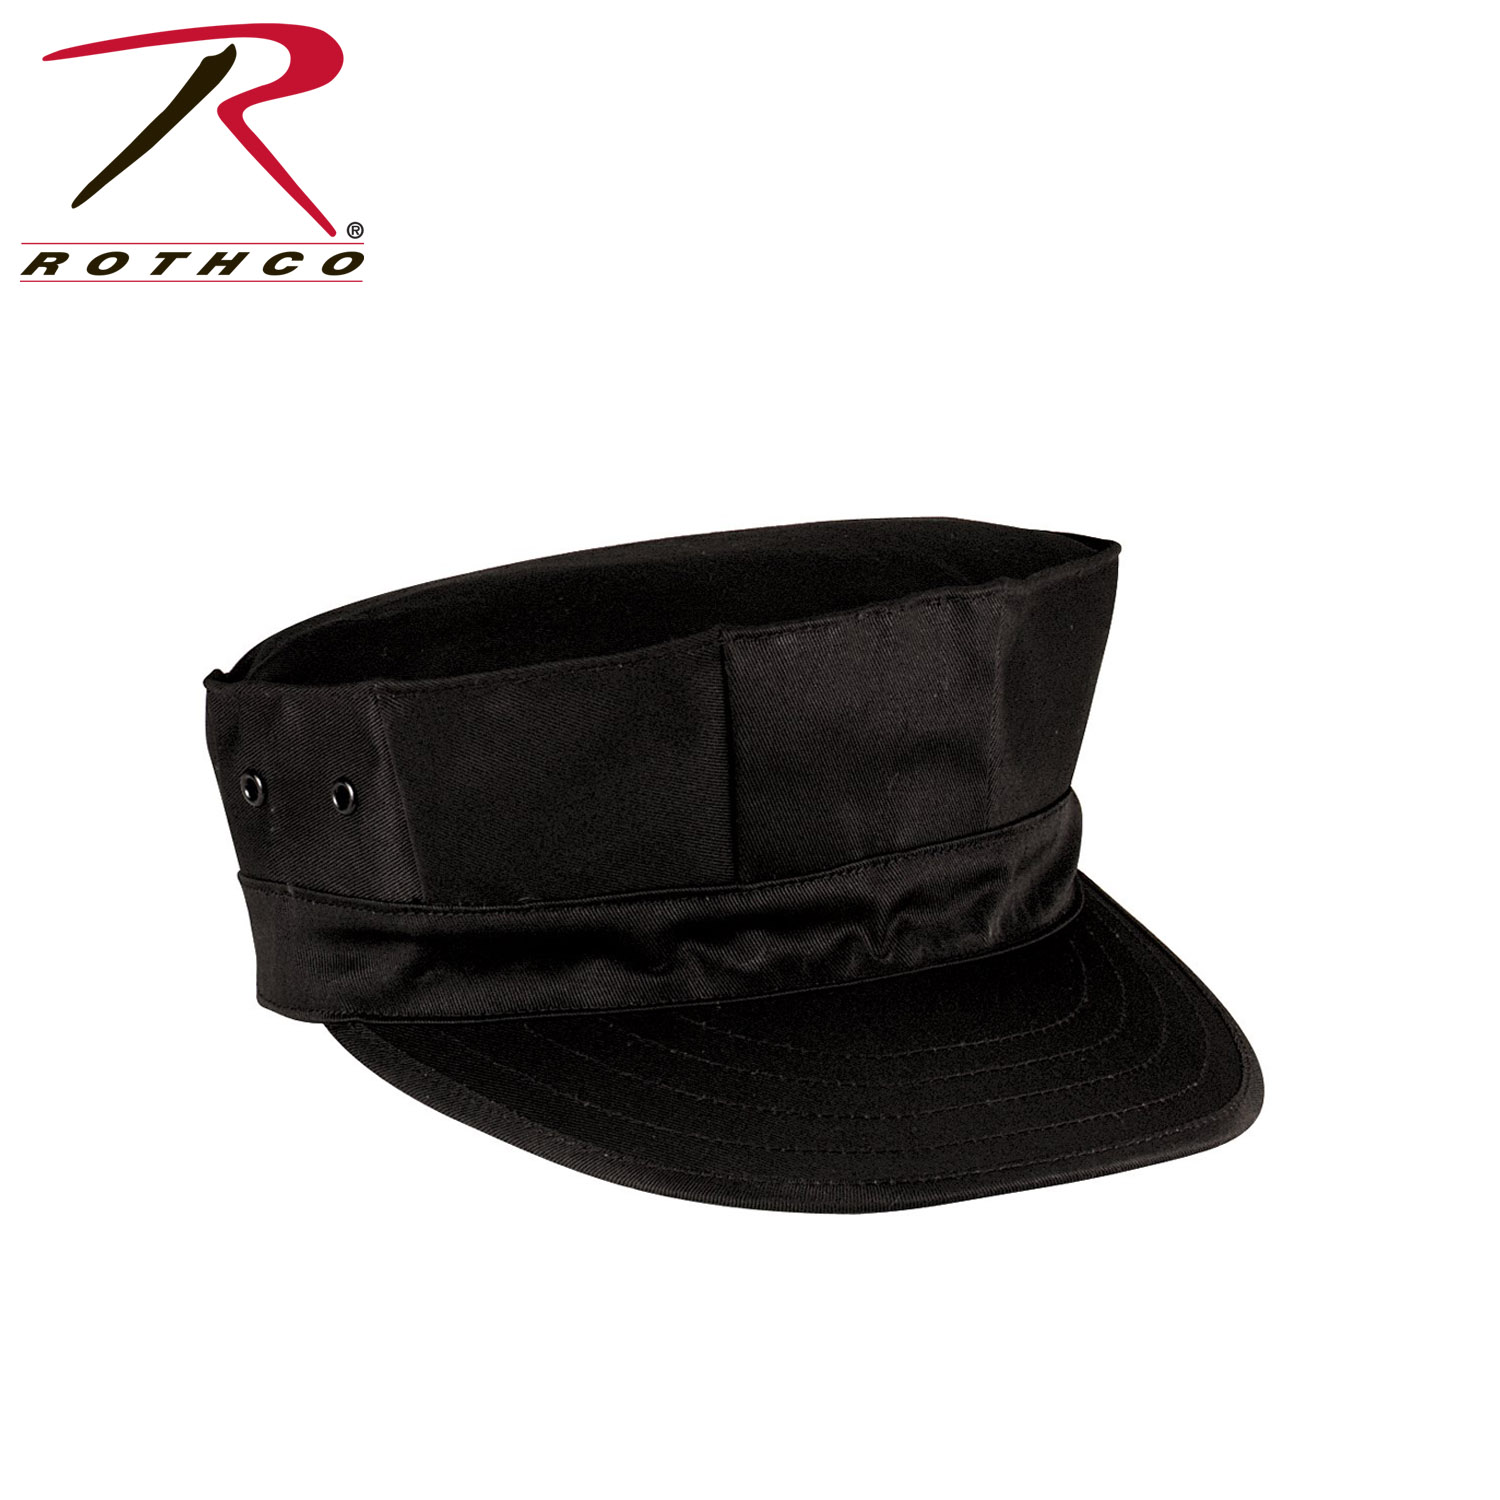 e37d27c7 Details about Rothco 5632 Black Poly-Cotton Marine Corps Cap With No Emblem